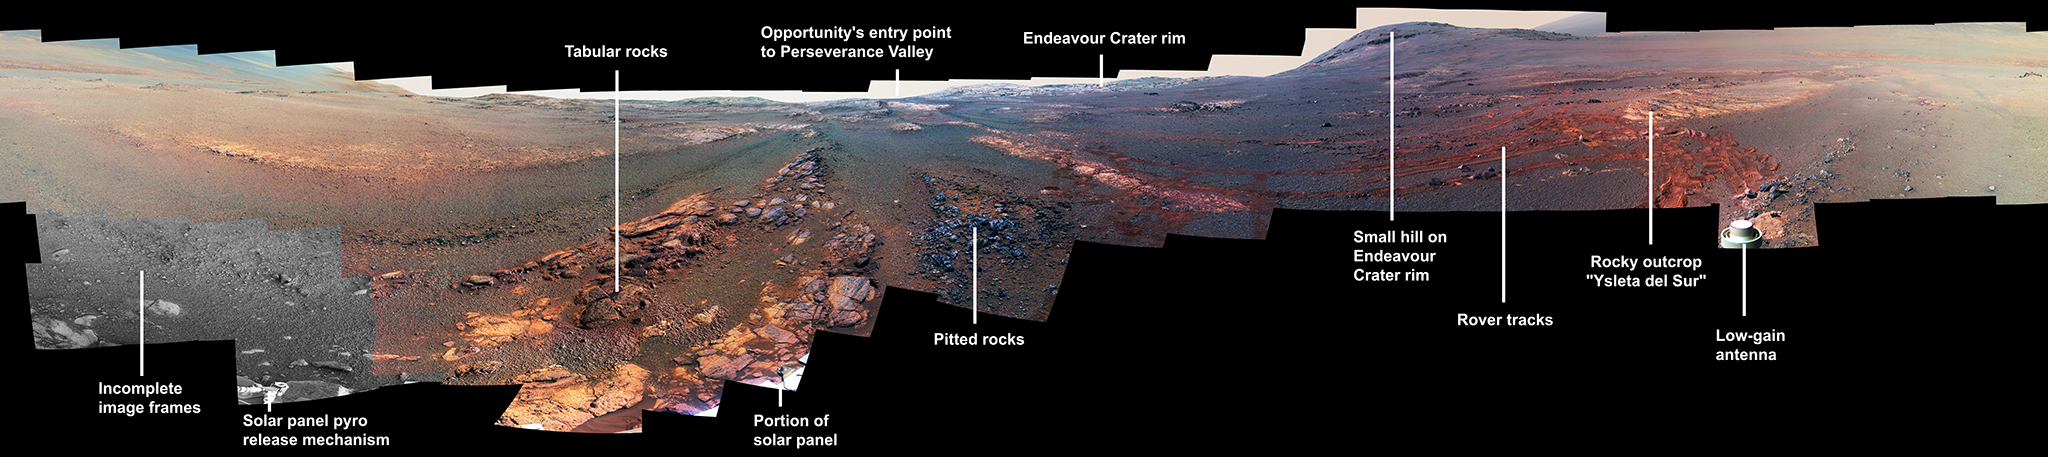 Opportunity Legacy Pan